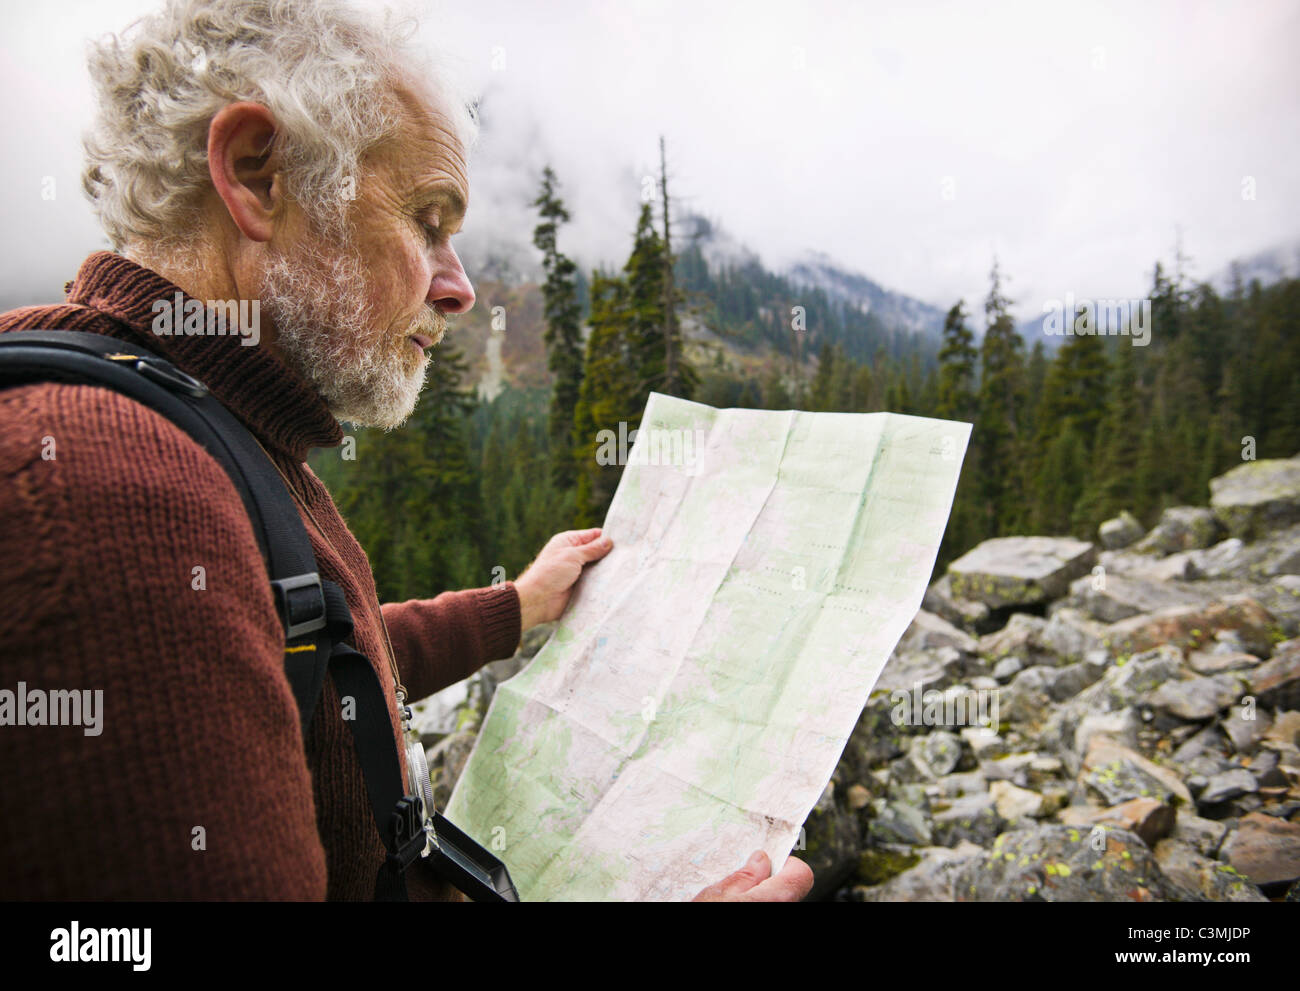 A mature man out in the wilderness using a map to find his way. Washington Cascades, USA. - Stock Image